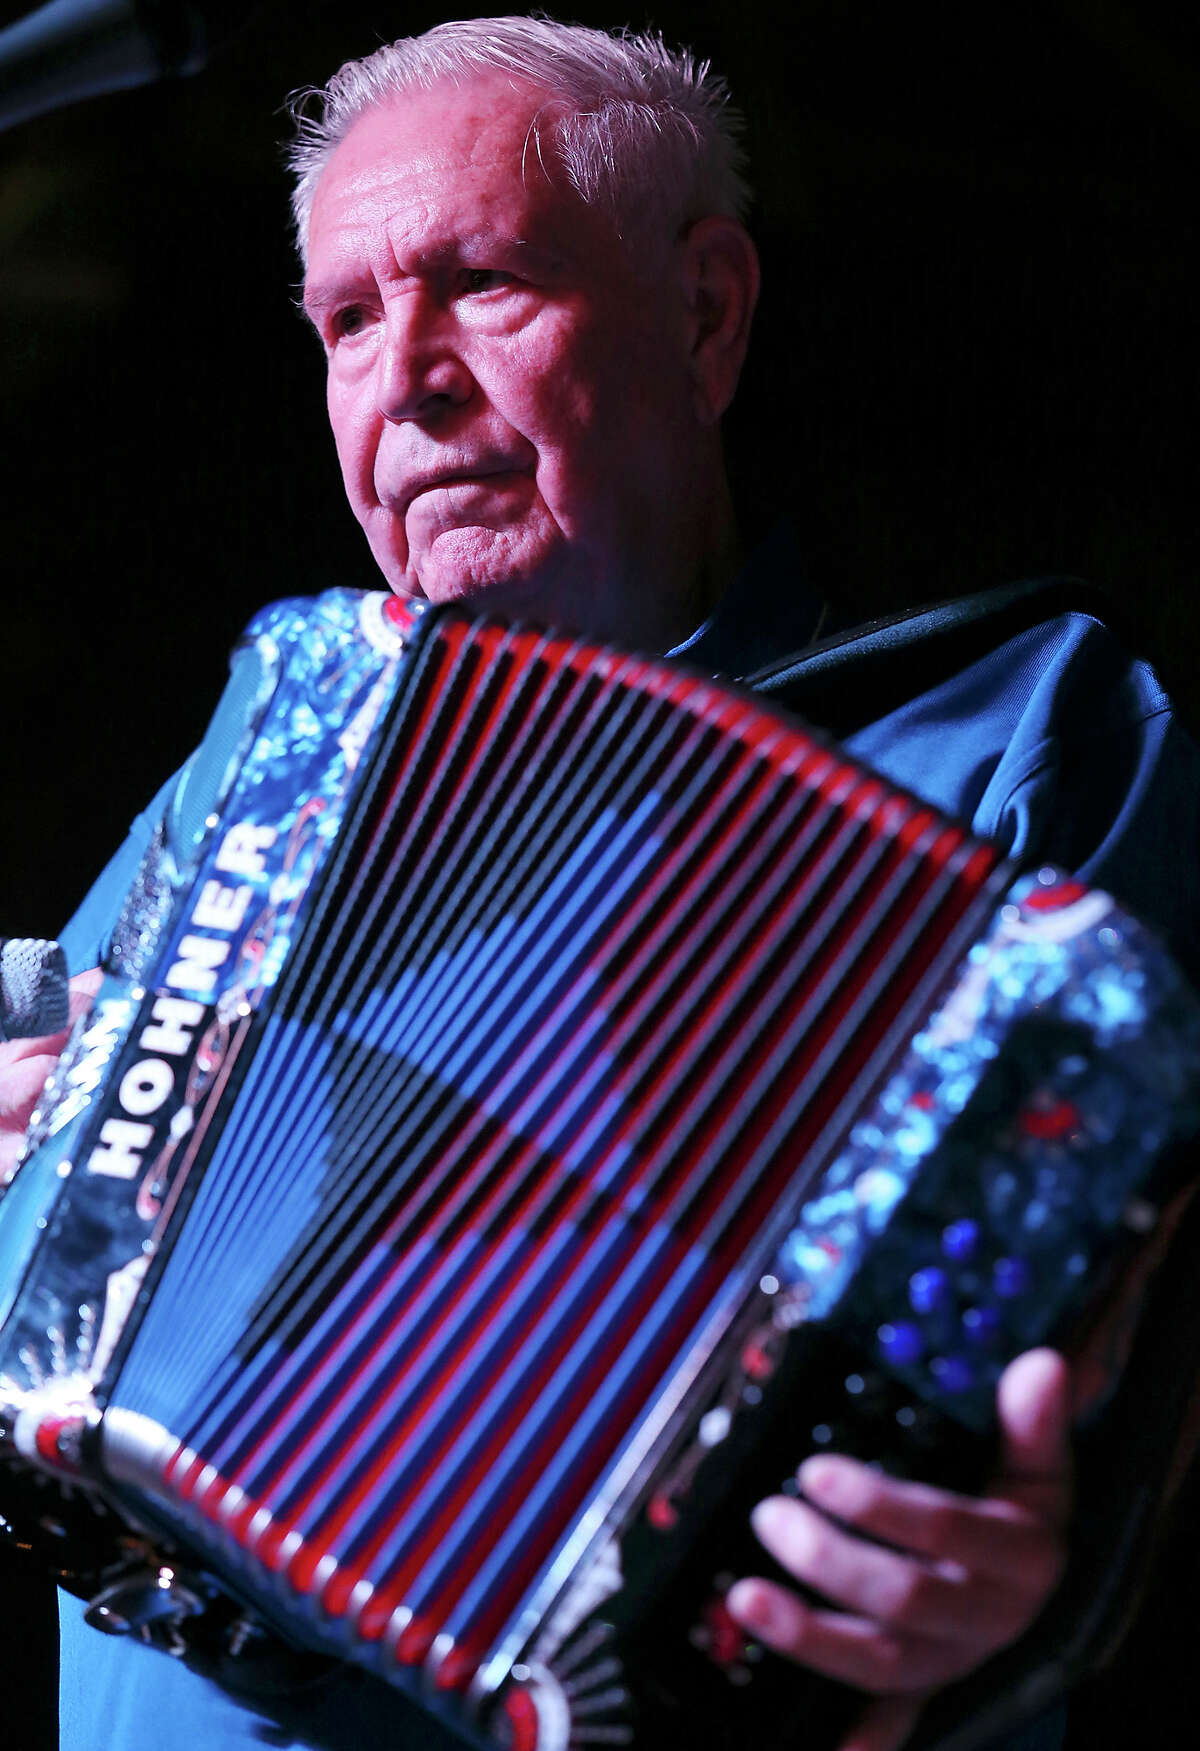 The flagship music event of the Guadalupe Cultural Arts Center opens with its heartwarming and always lively Senior Conjunto Dance at the Guadalupe Theater. This year, it falls to Roger Arocha y su Conjunto to get the feet shuffling. Wednesday's morning event is the warmup for an accordion wars competition at Sam's Burger Joint at 7 p.m. Wednesday. Thursday night is the annual Hall of Fame Gala at the Guadalupe Theater featuring new inductees and the music of Bene Medina (pictured) y Conjunto Aguila.  Dance, 10 a.m. Wednesday, Guadalupe Theater, 1301 Guadalupe St. Free. 210-271-3151, guadalupeculturalarts.org  -- Hector Saldaña